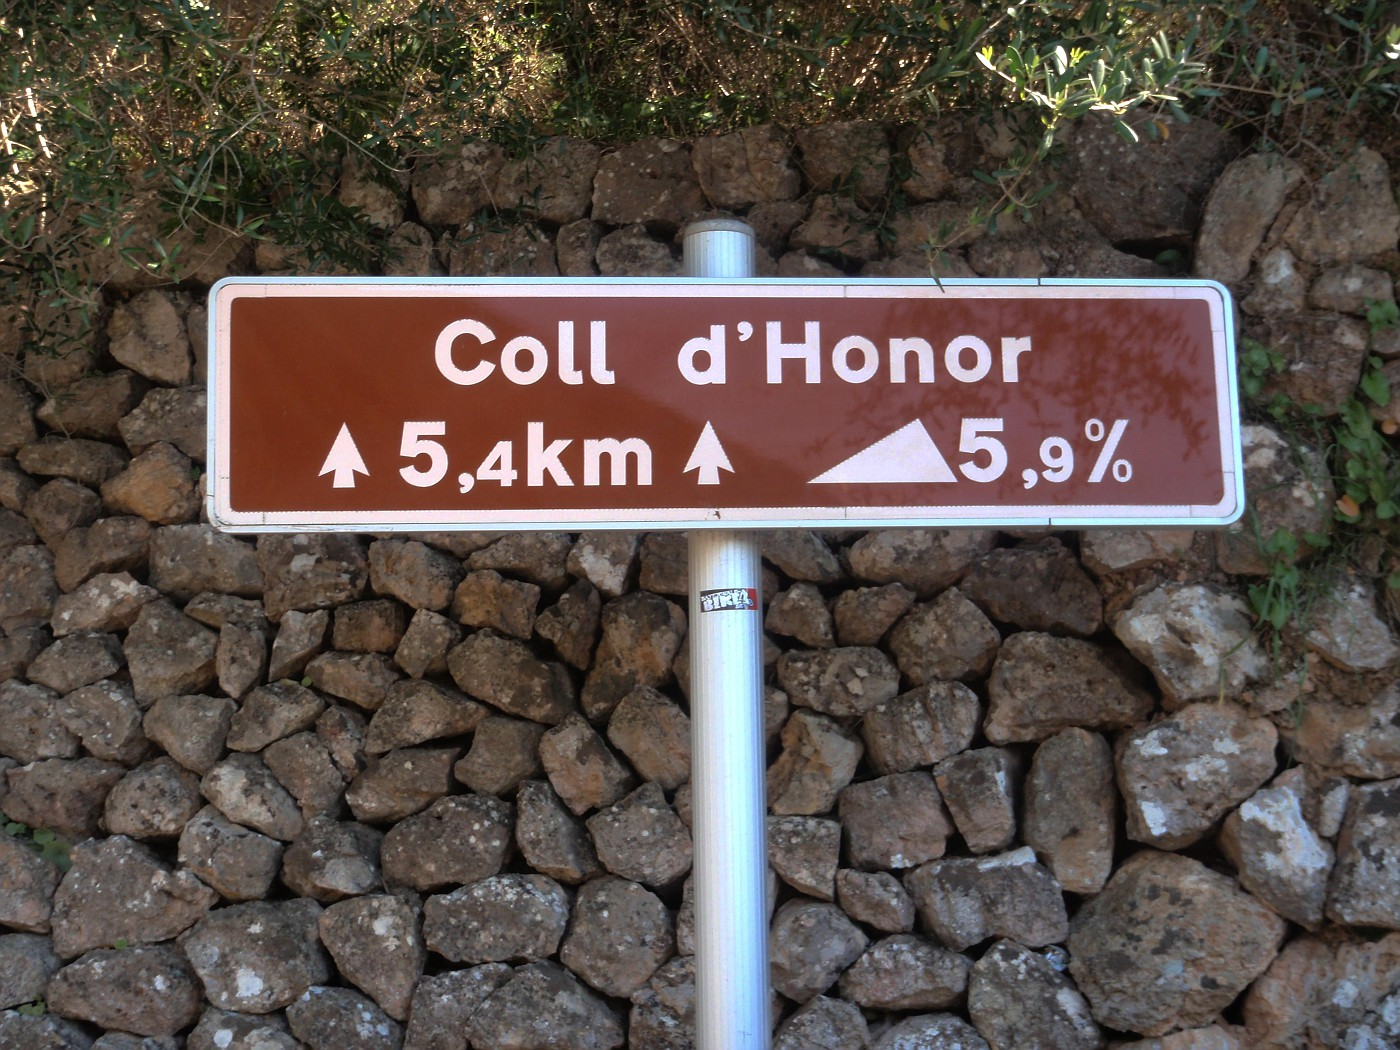 Coll d'Honor